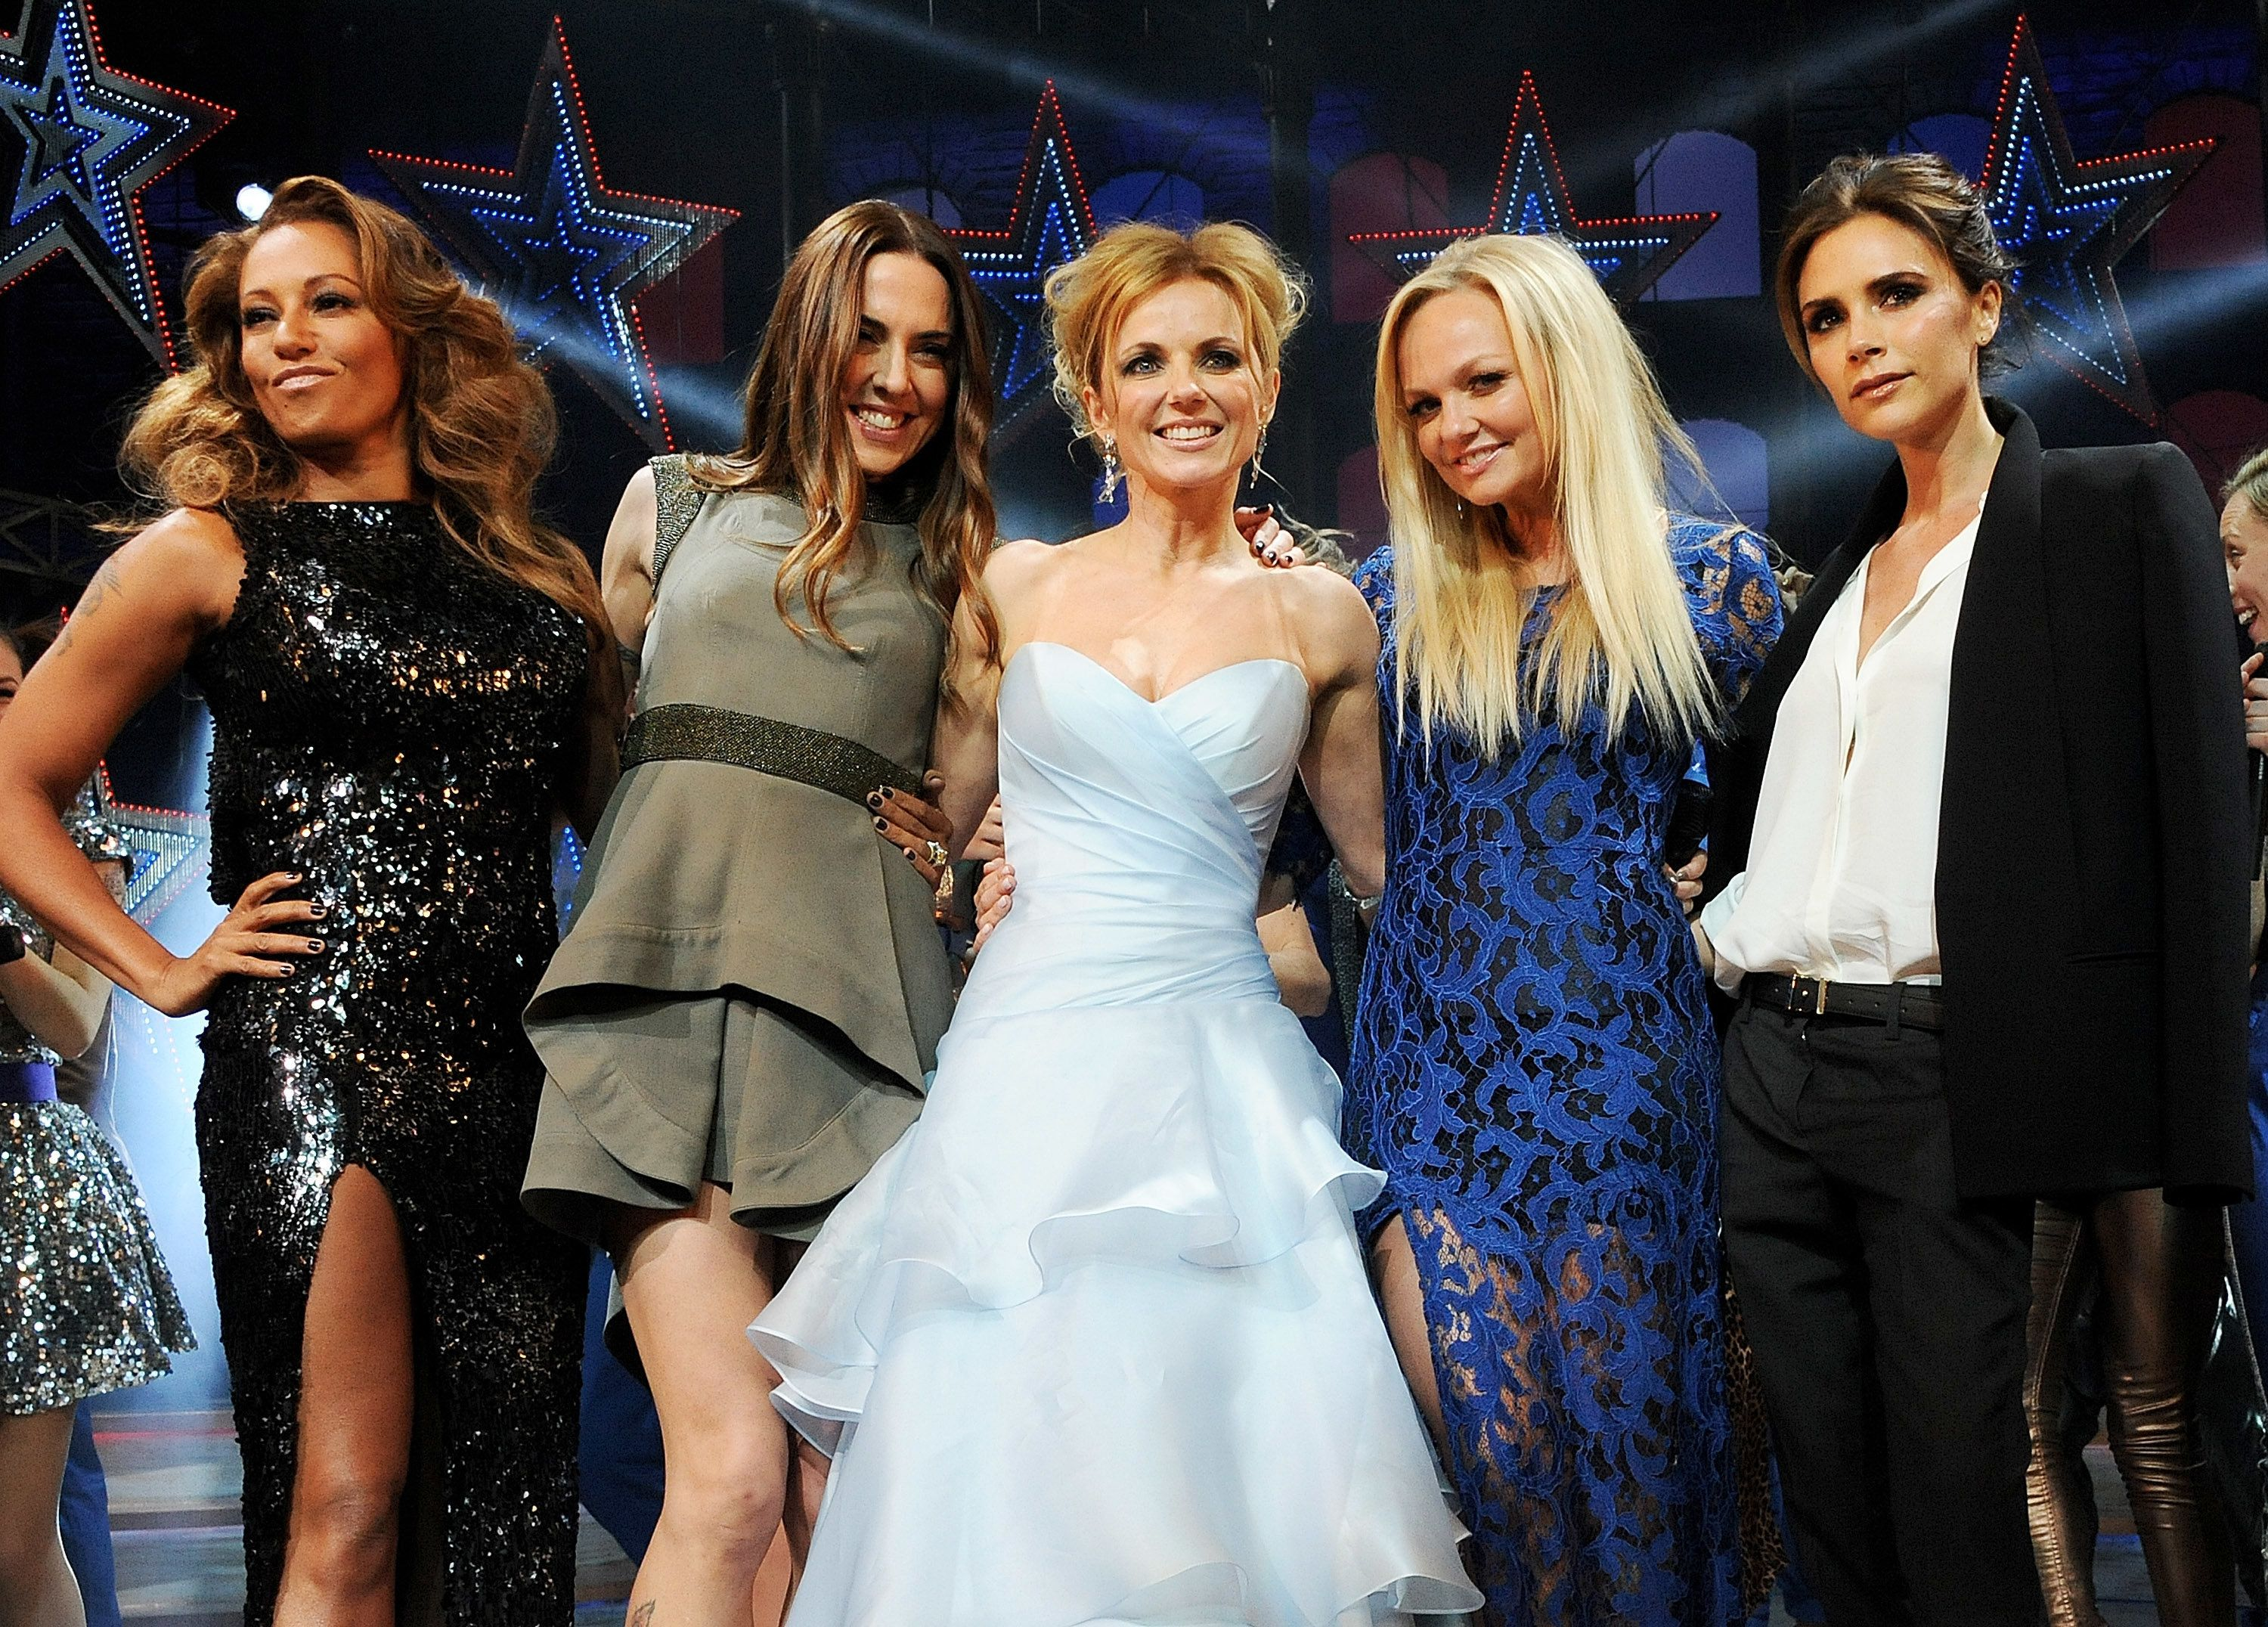 Victoria Beckham Reunites With Mel C Amid Claims She's Skipping Spice Girls